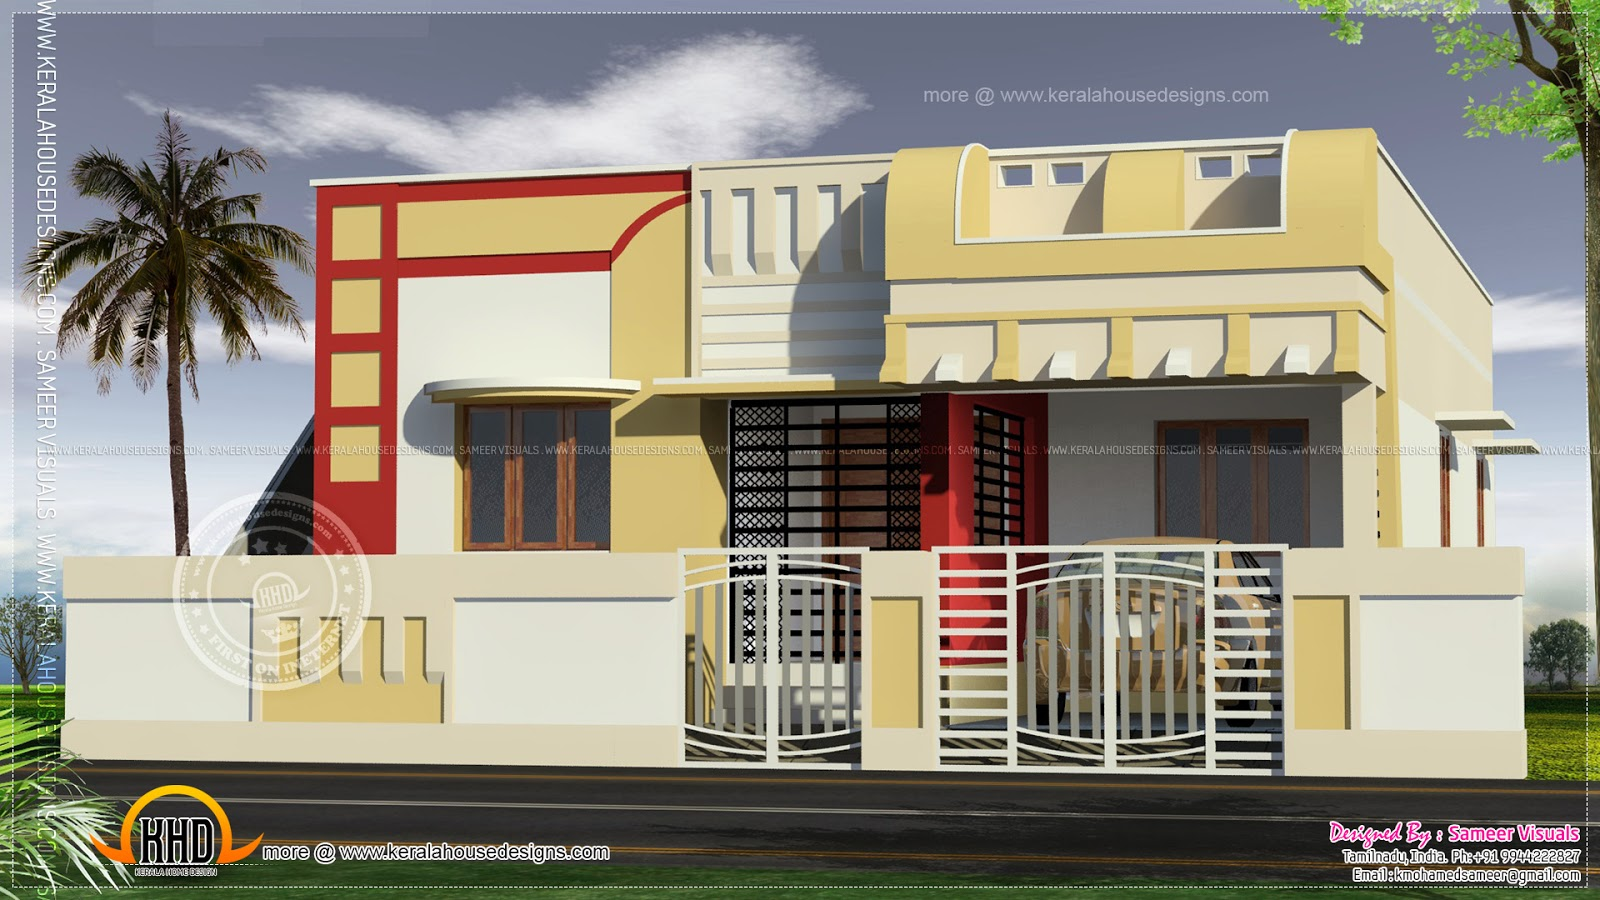 Small south indian home design kerala home design and for House design indian style plan and elevation